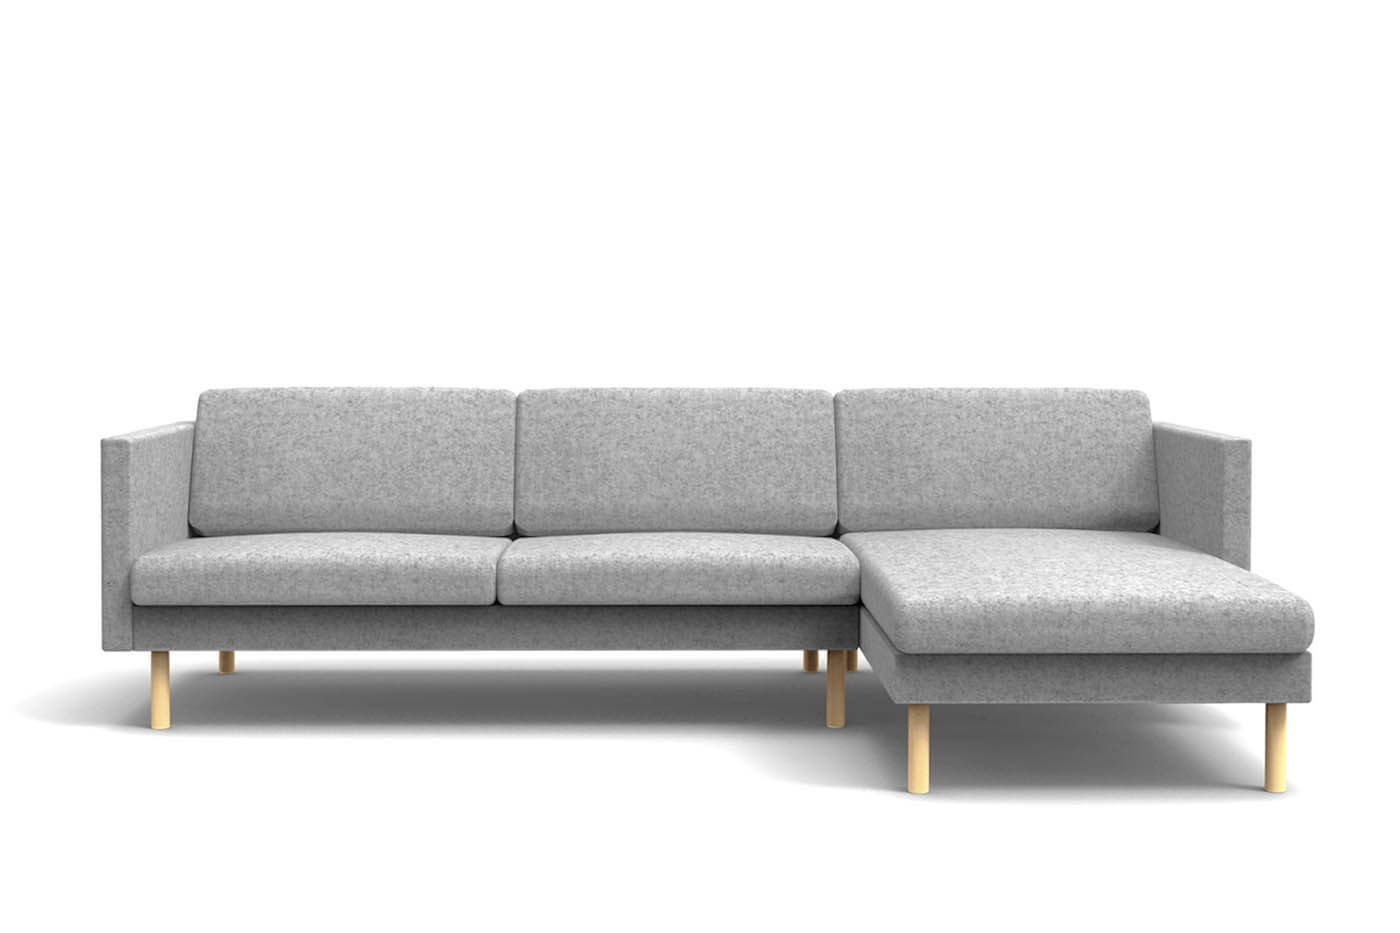 Newest Sofas With Chaise Lounge In Leaf Sofa Chaise Lounge Left – Oot Oot Studio (View 3 of 15)